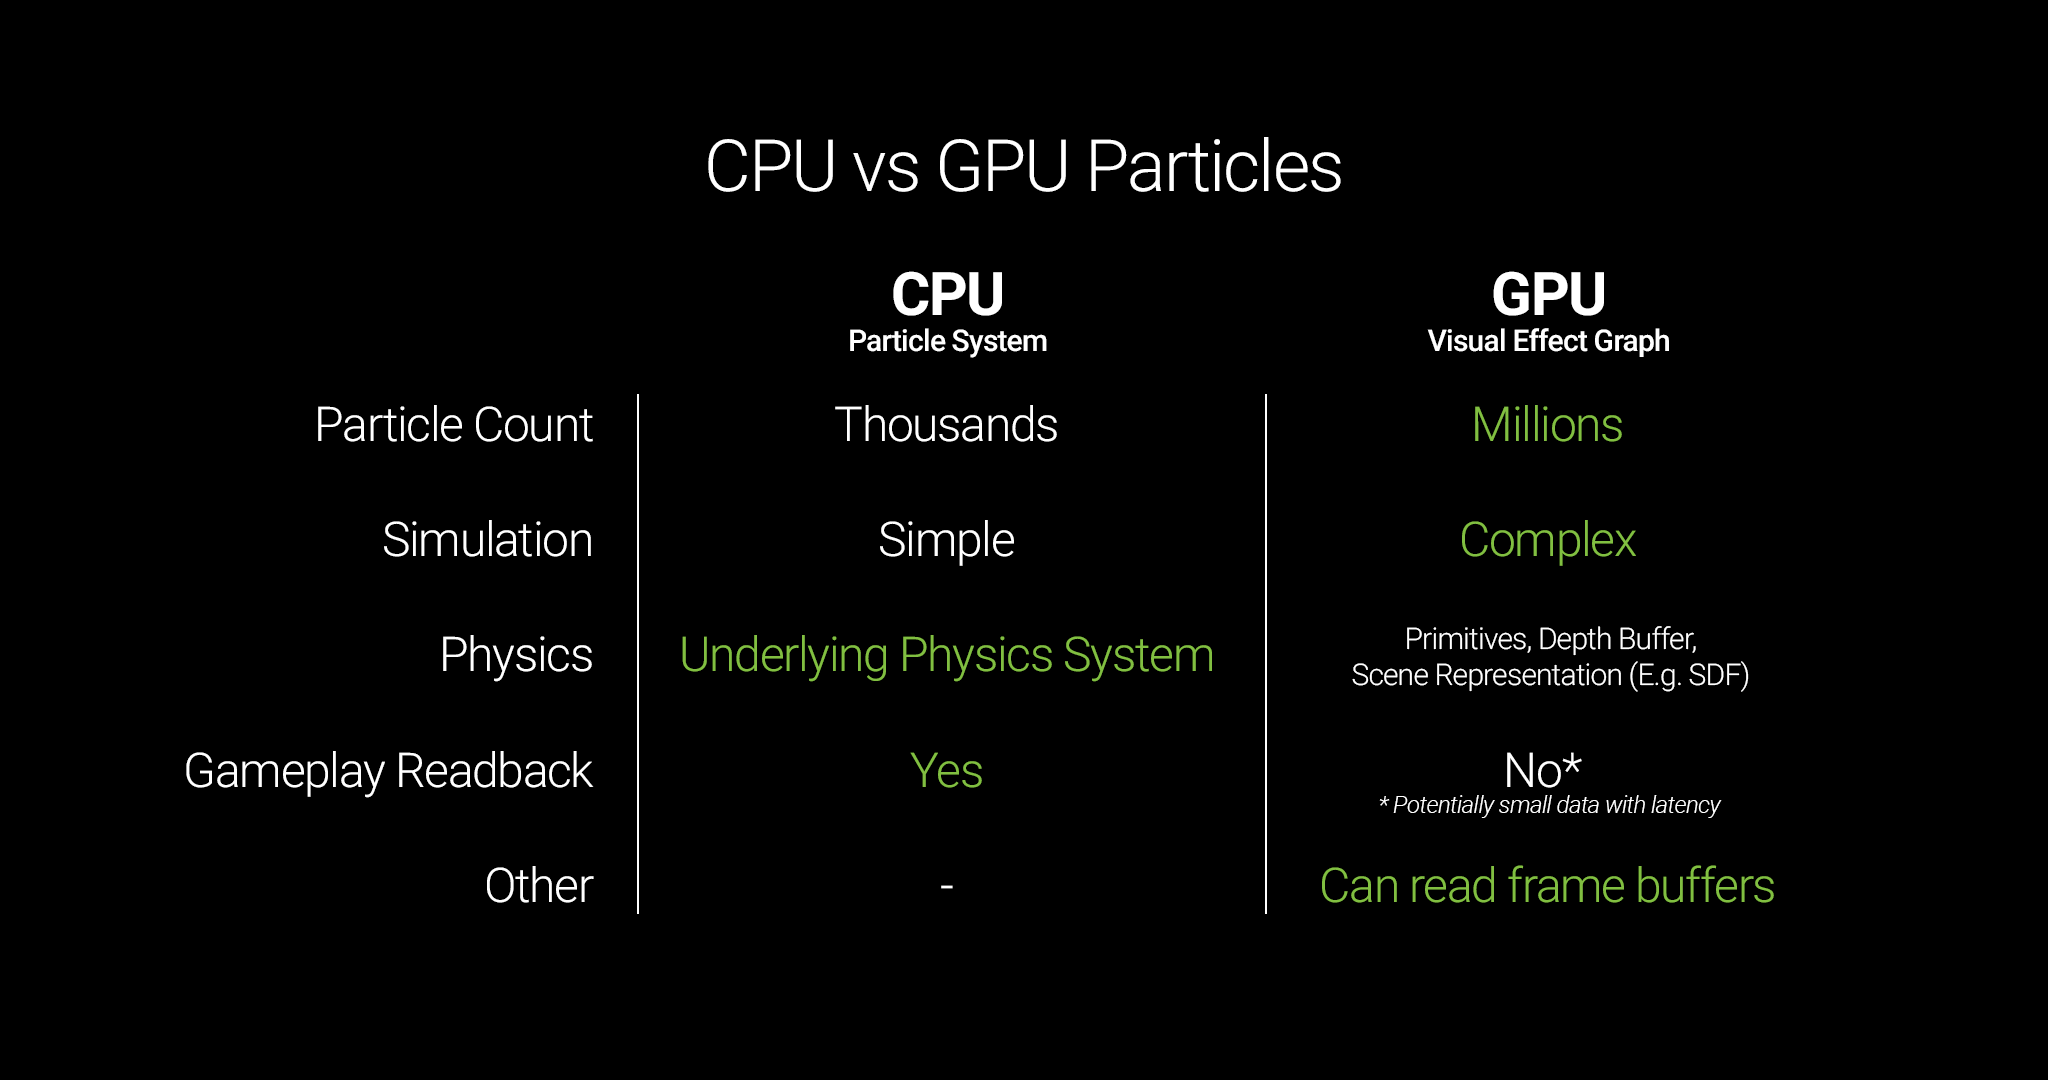 a table comparing the differences between cpu and gpu particle systems